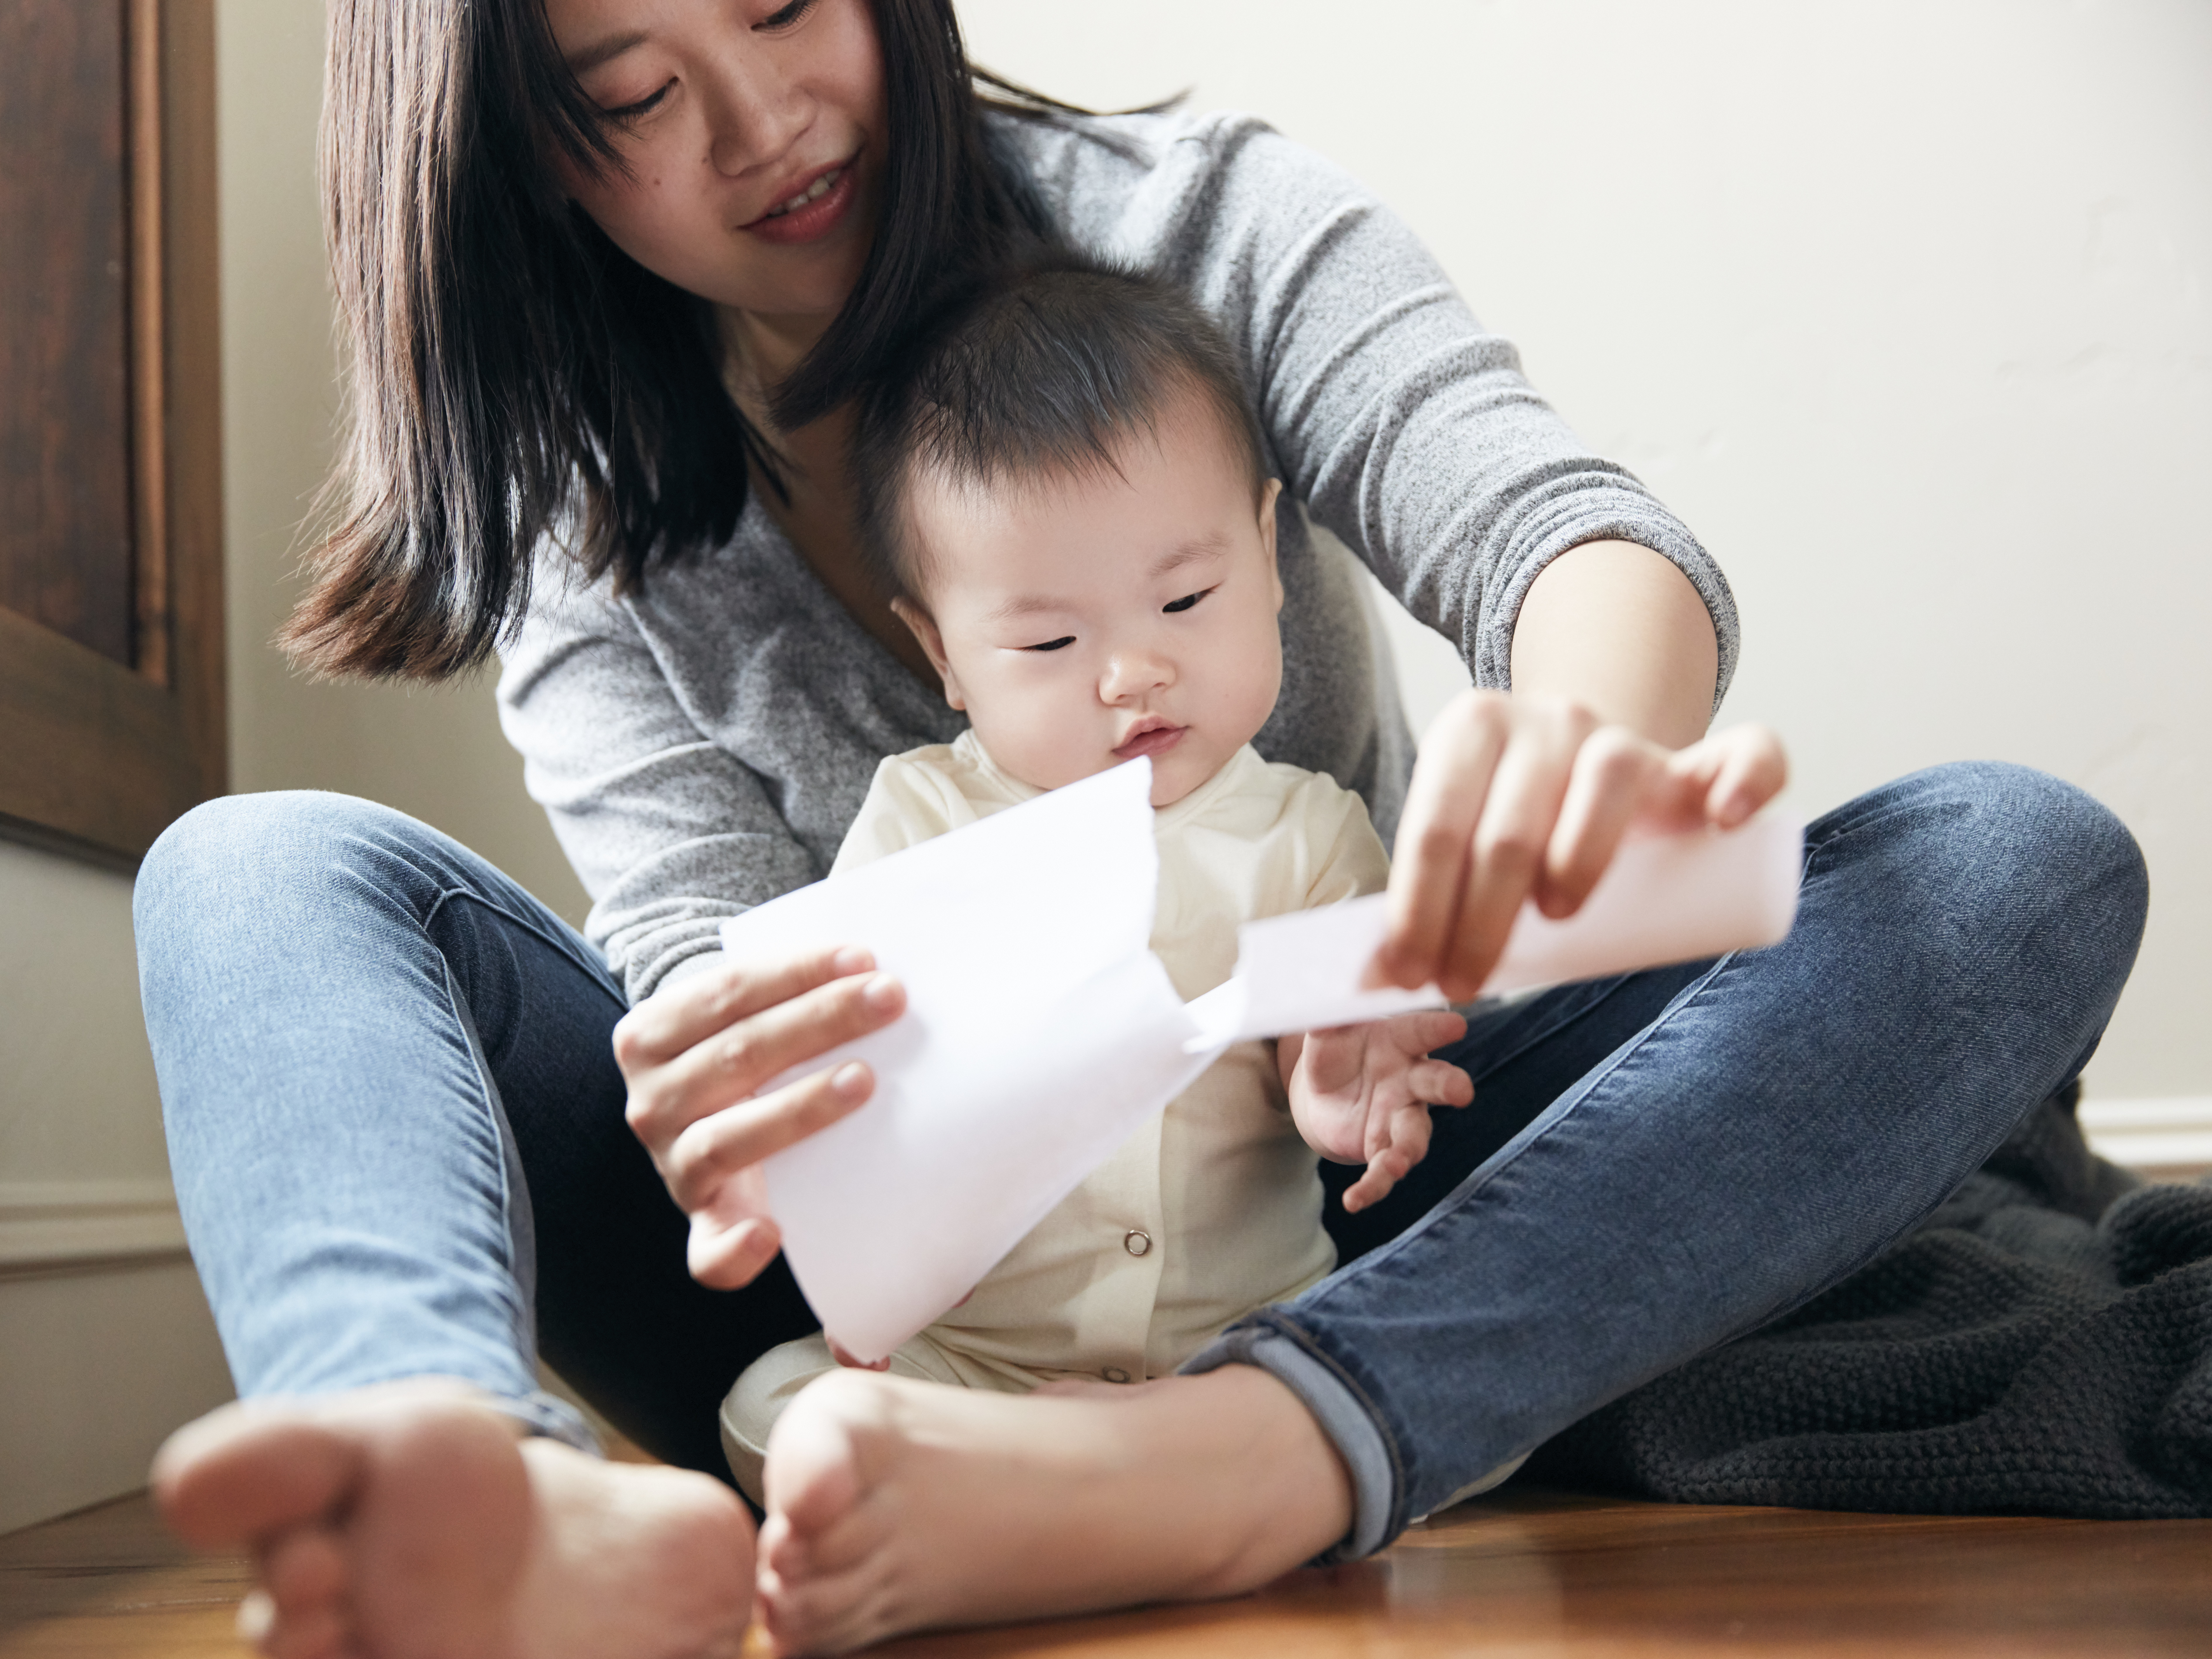 Woman ripping a piece of paper in front of a baby sitting in front of her